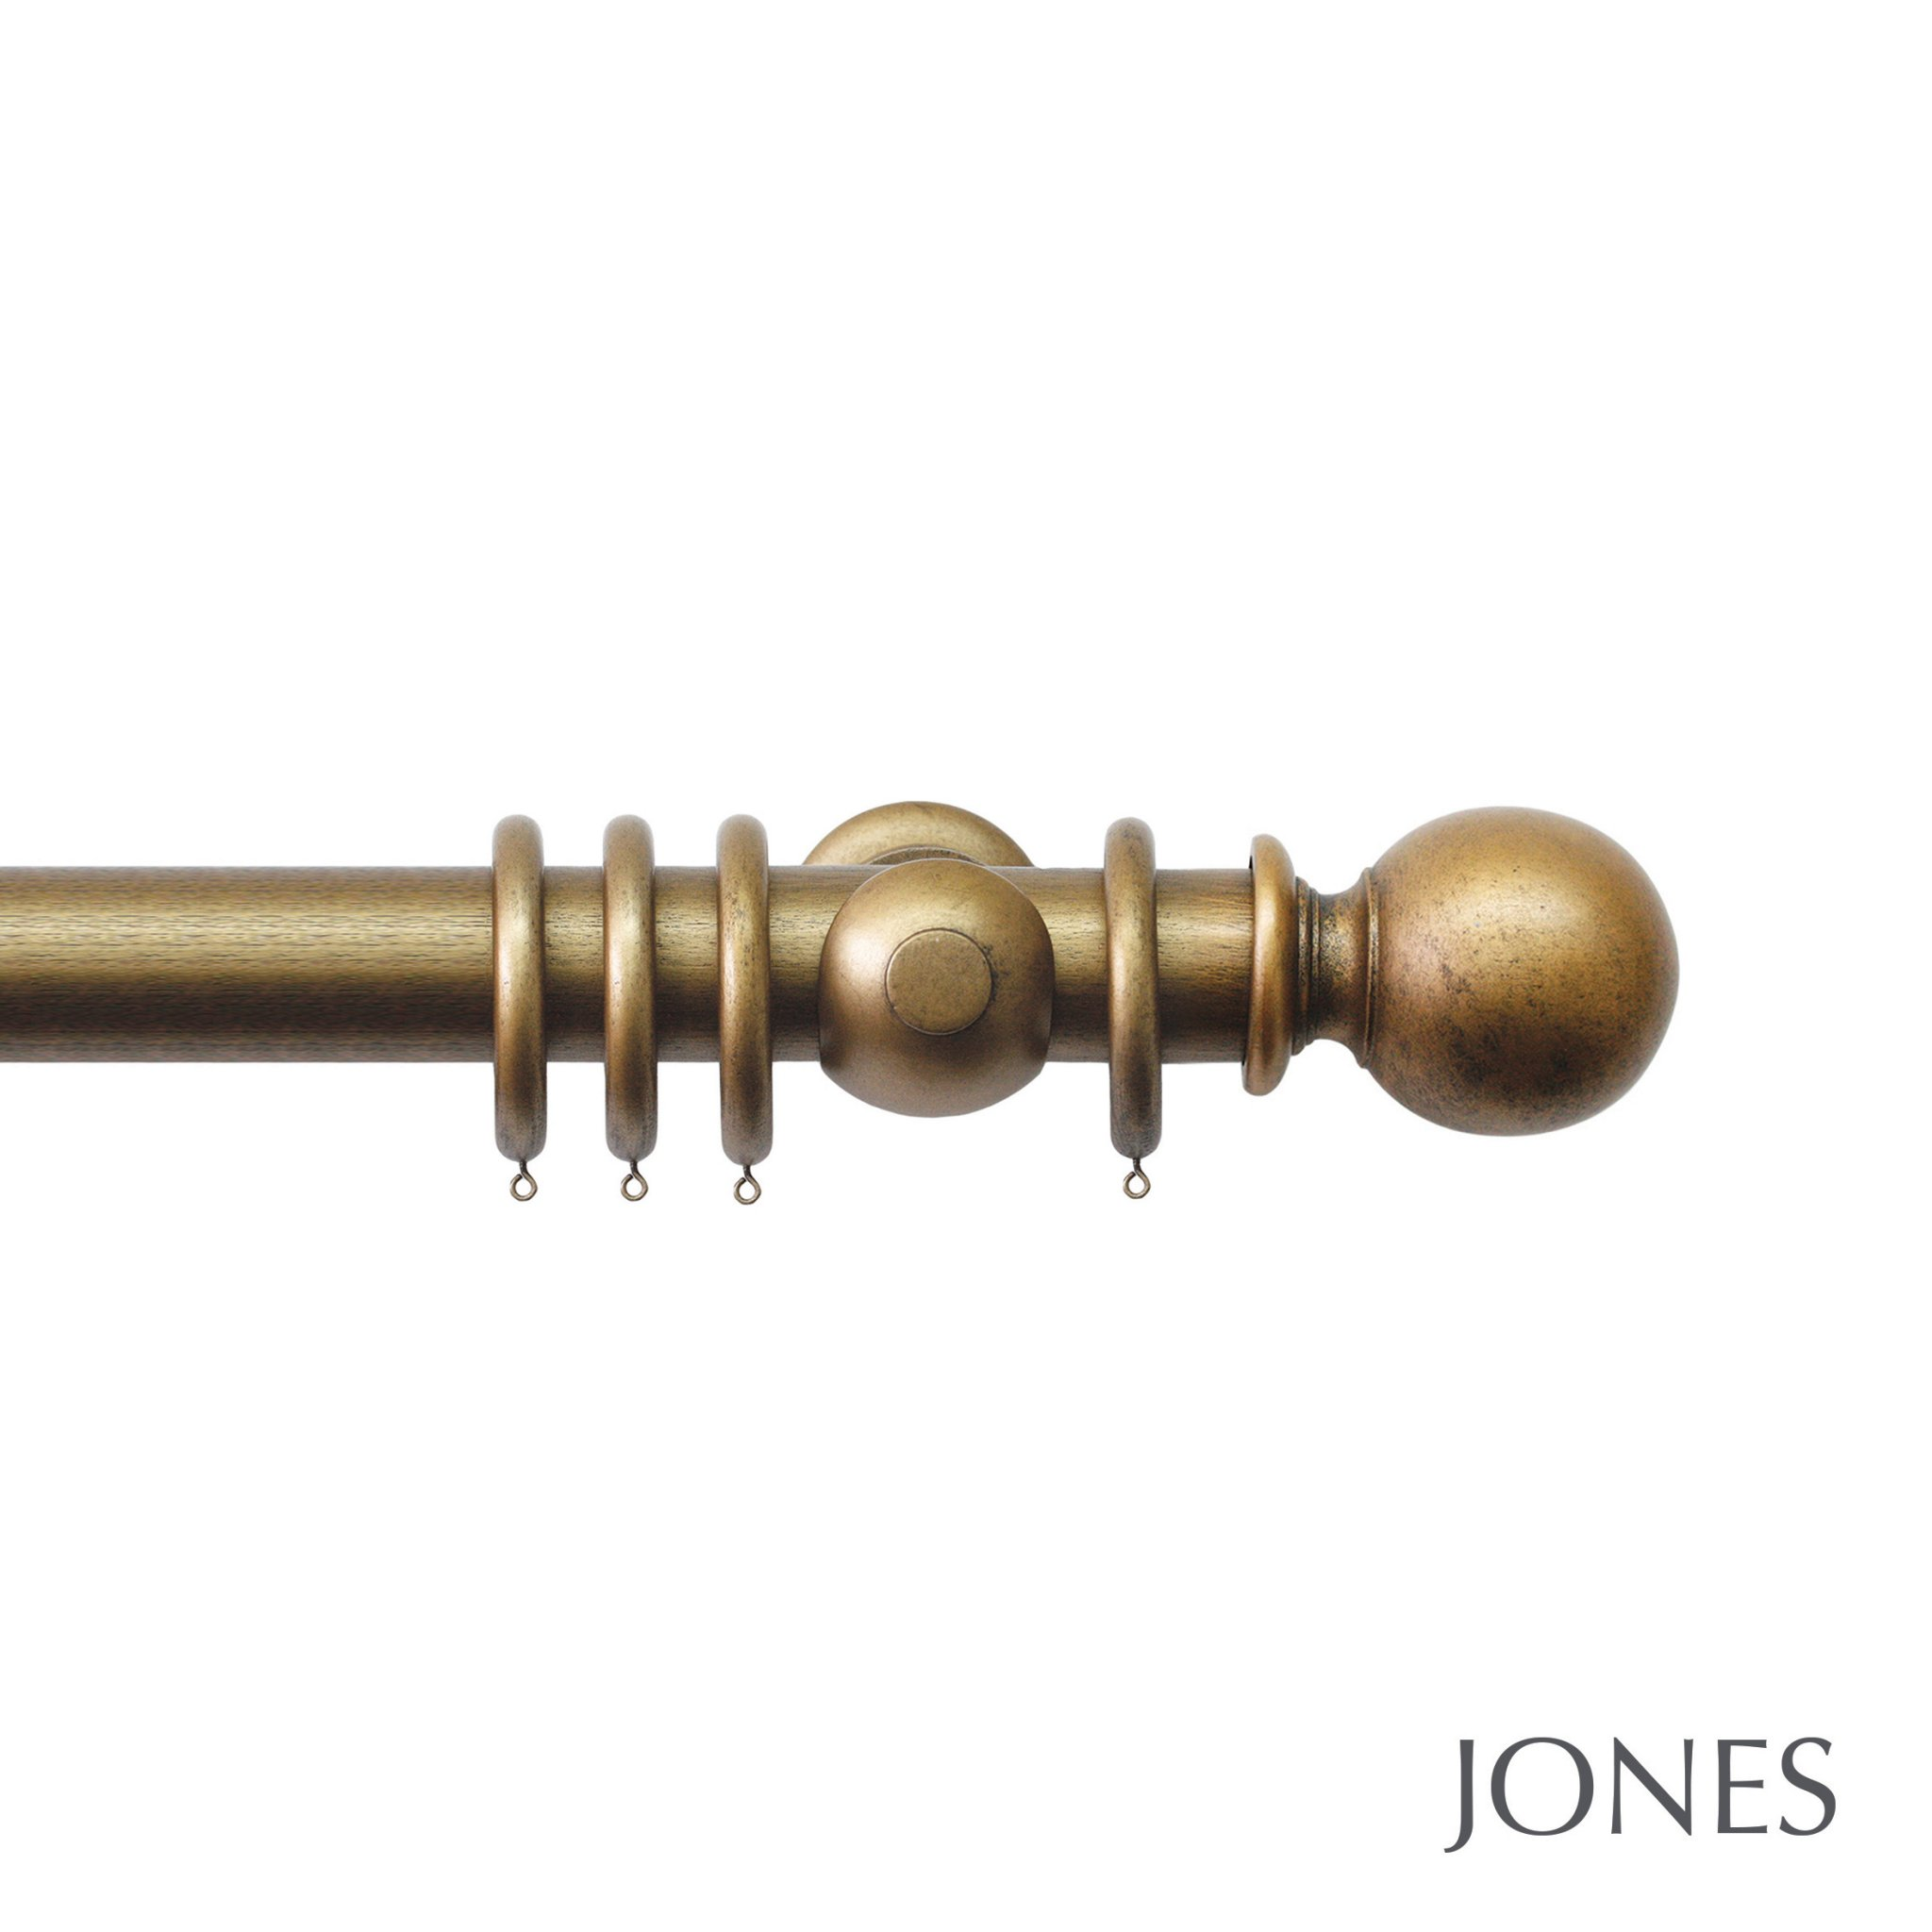 Jones Grande Handcrafted 63mm Wooden Curtain Pole Ball